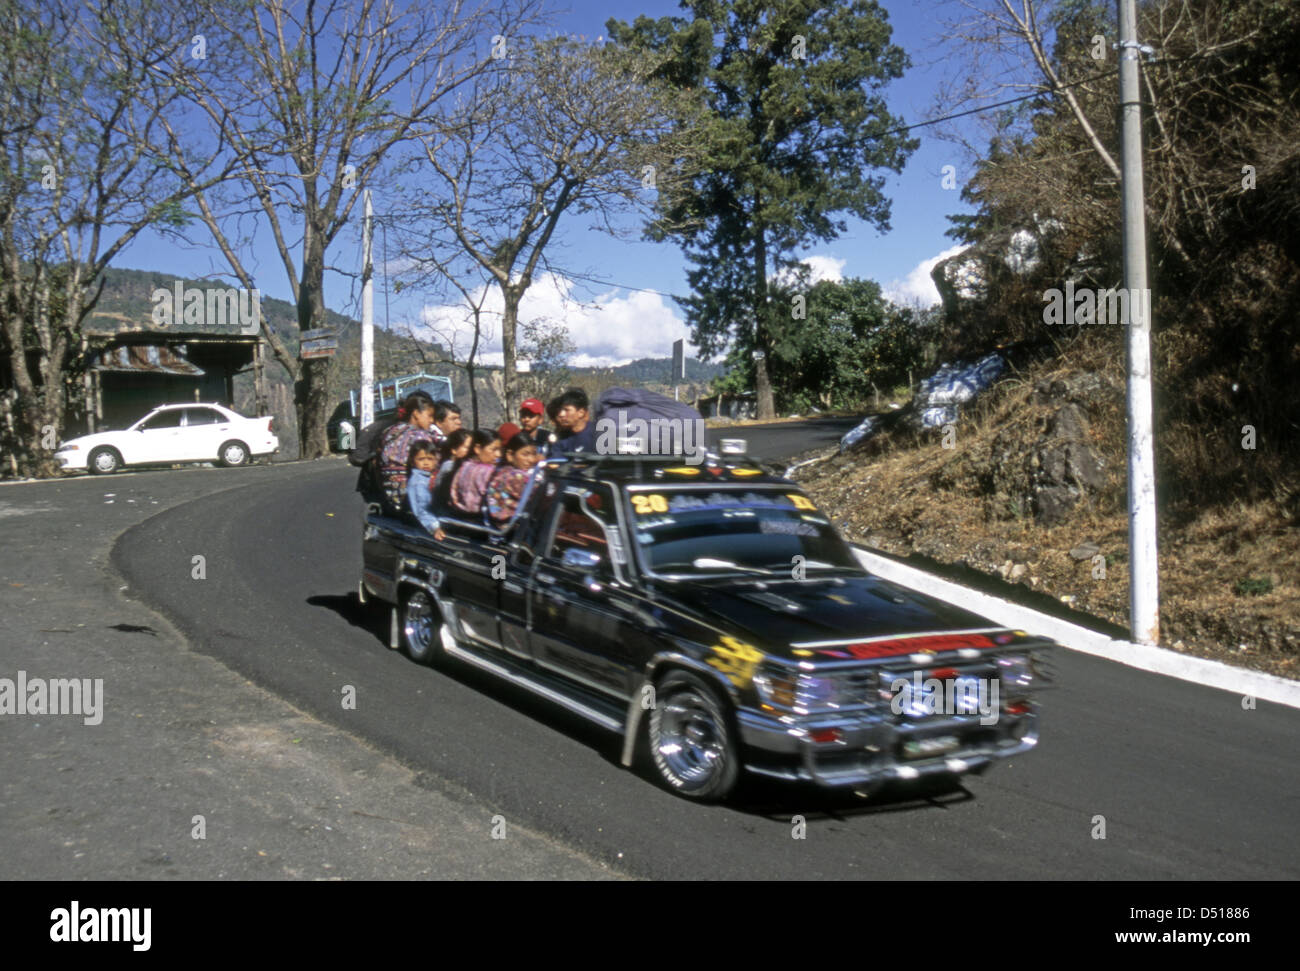 An overloaded taxi pickup in Santiago Atitlan - Stock Image